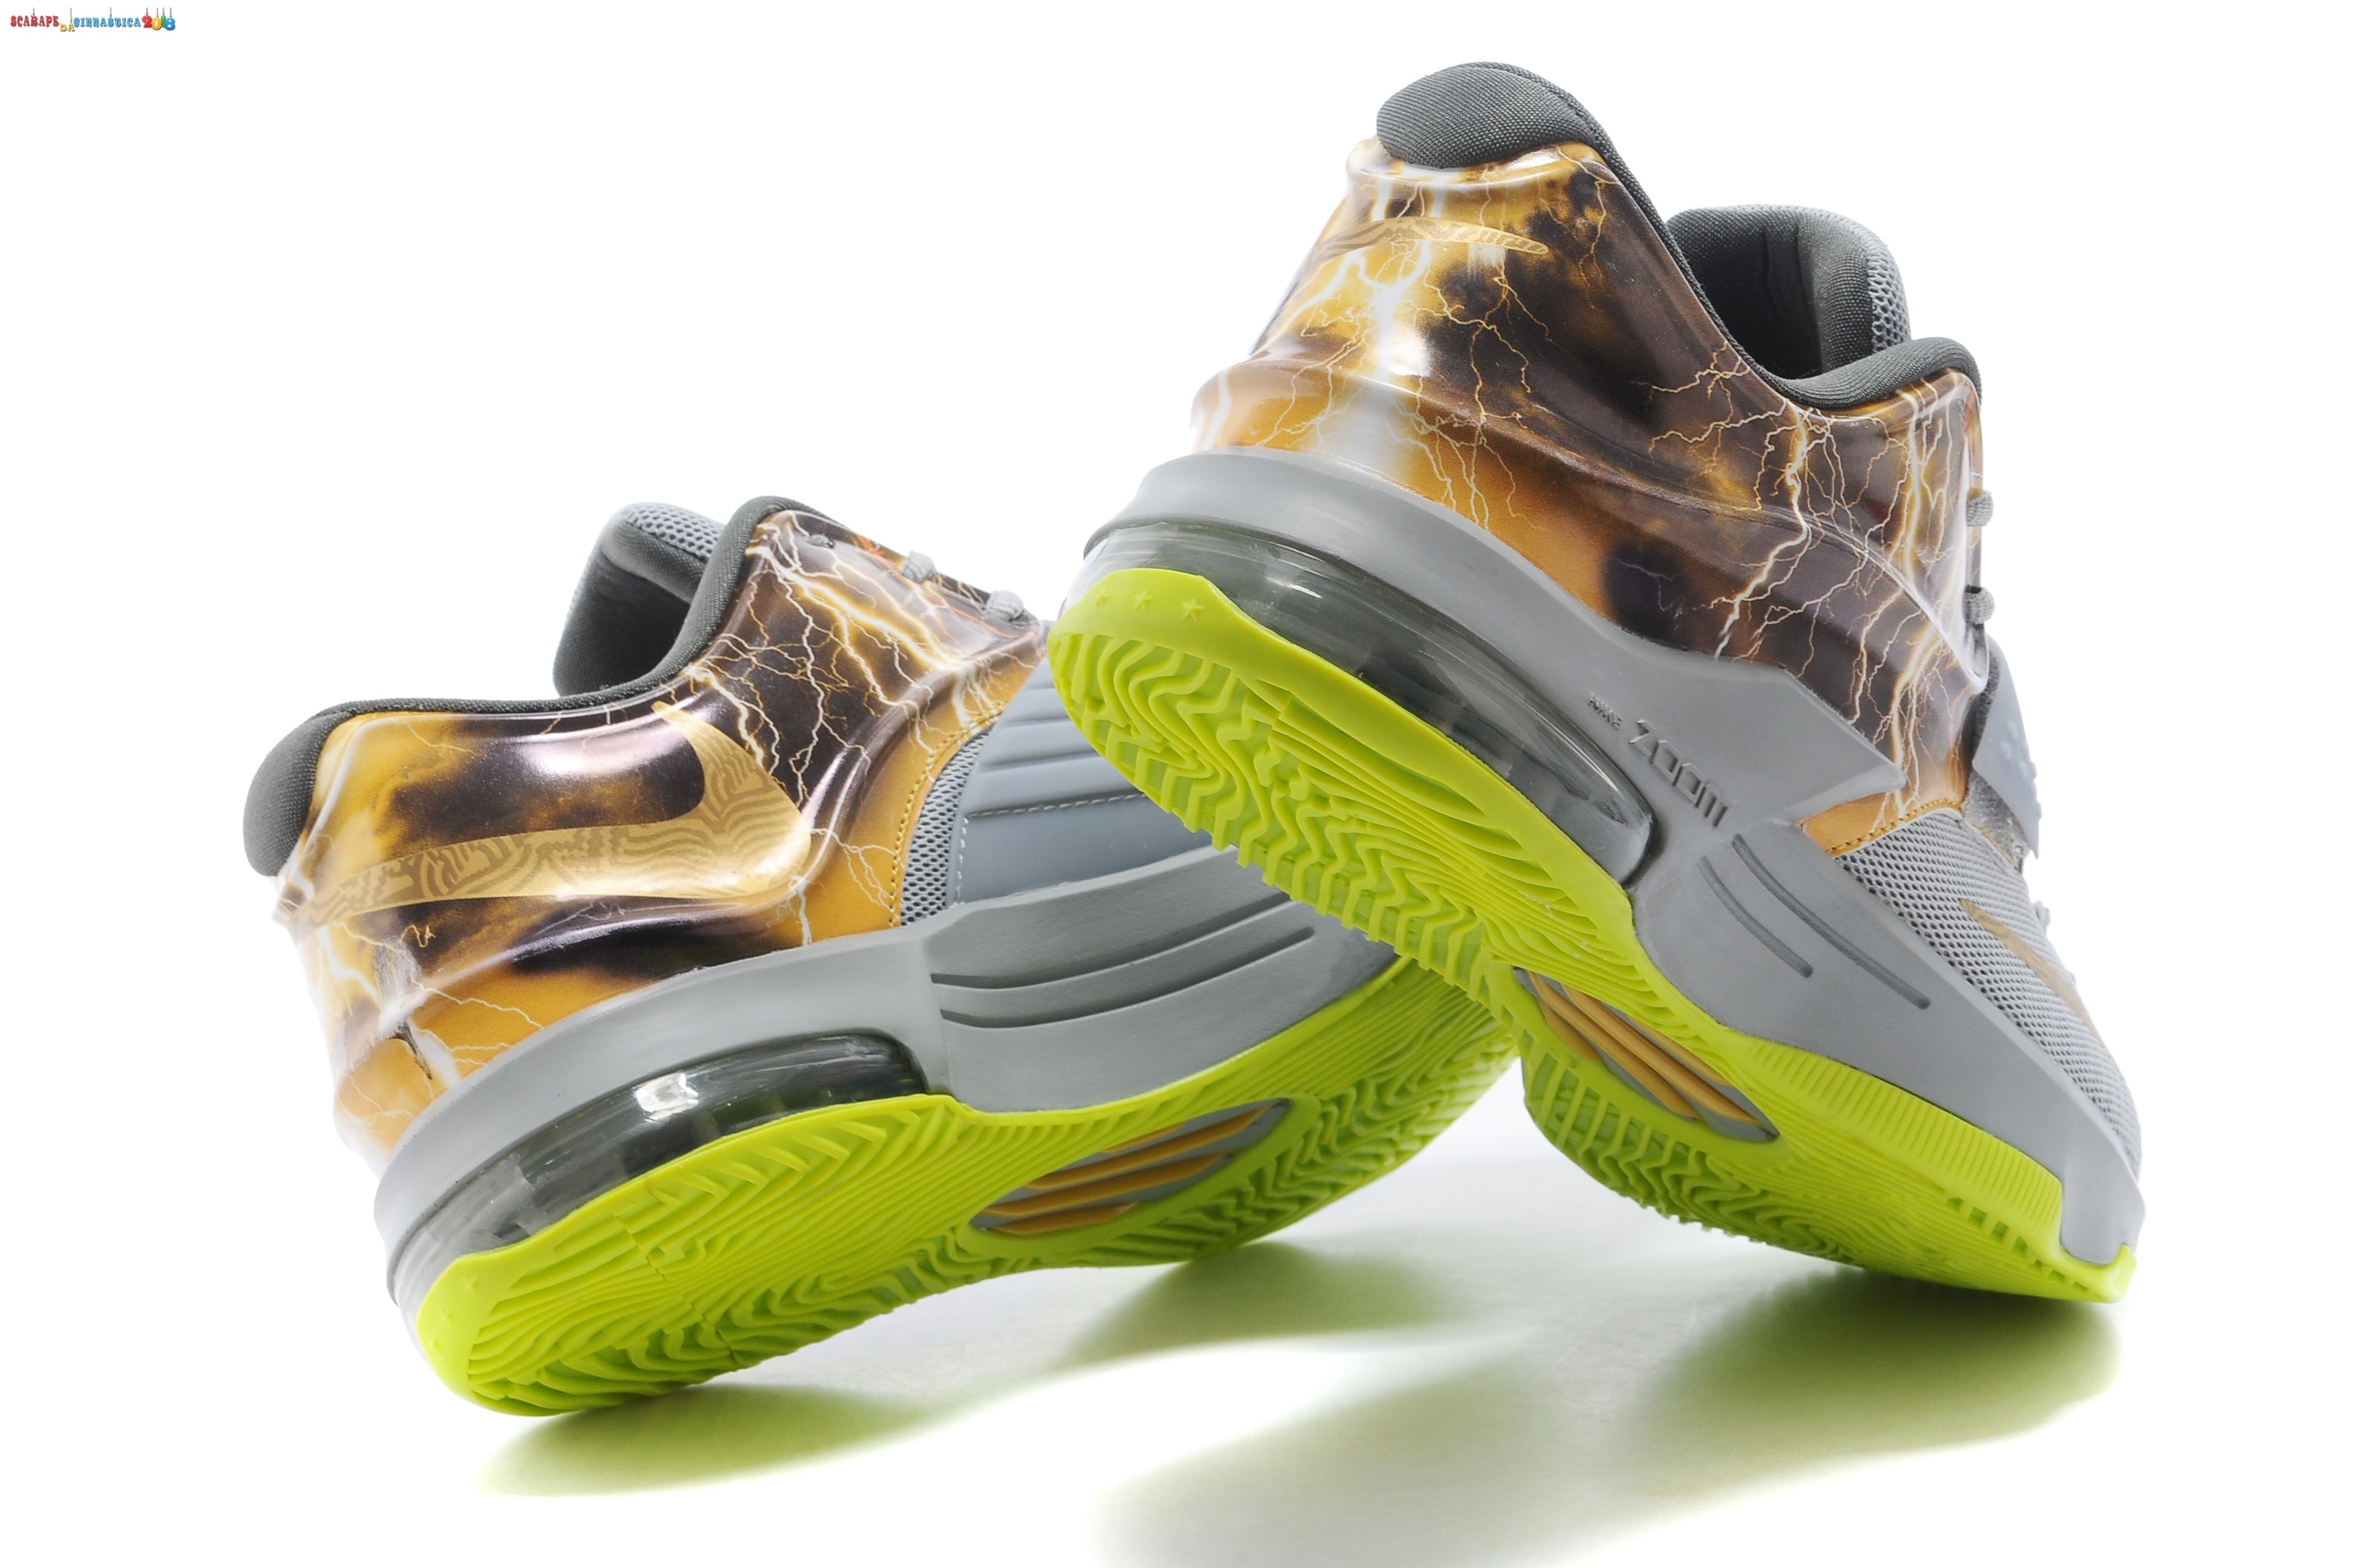 nike kd 7 elite uomo marroni